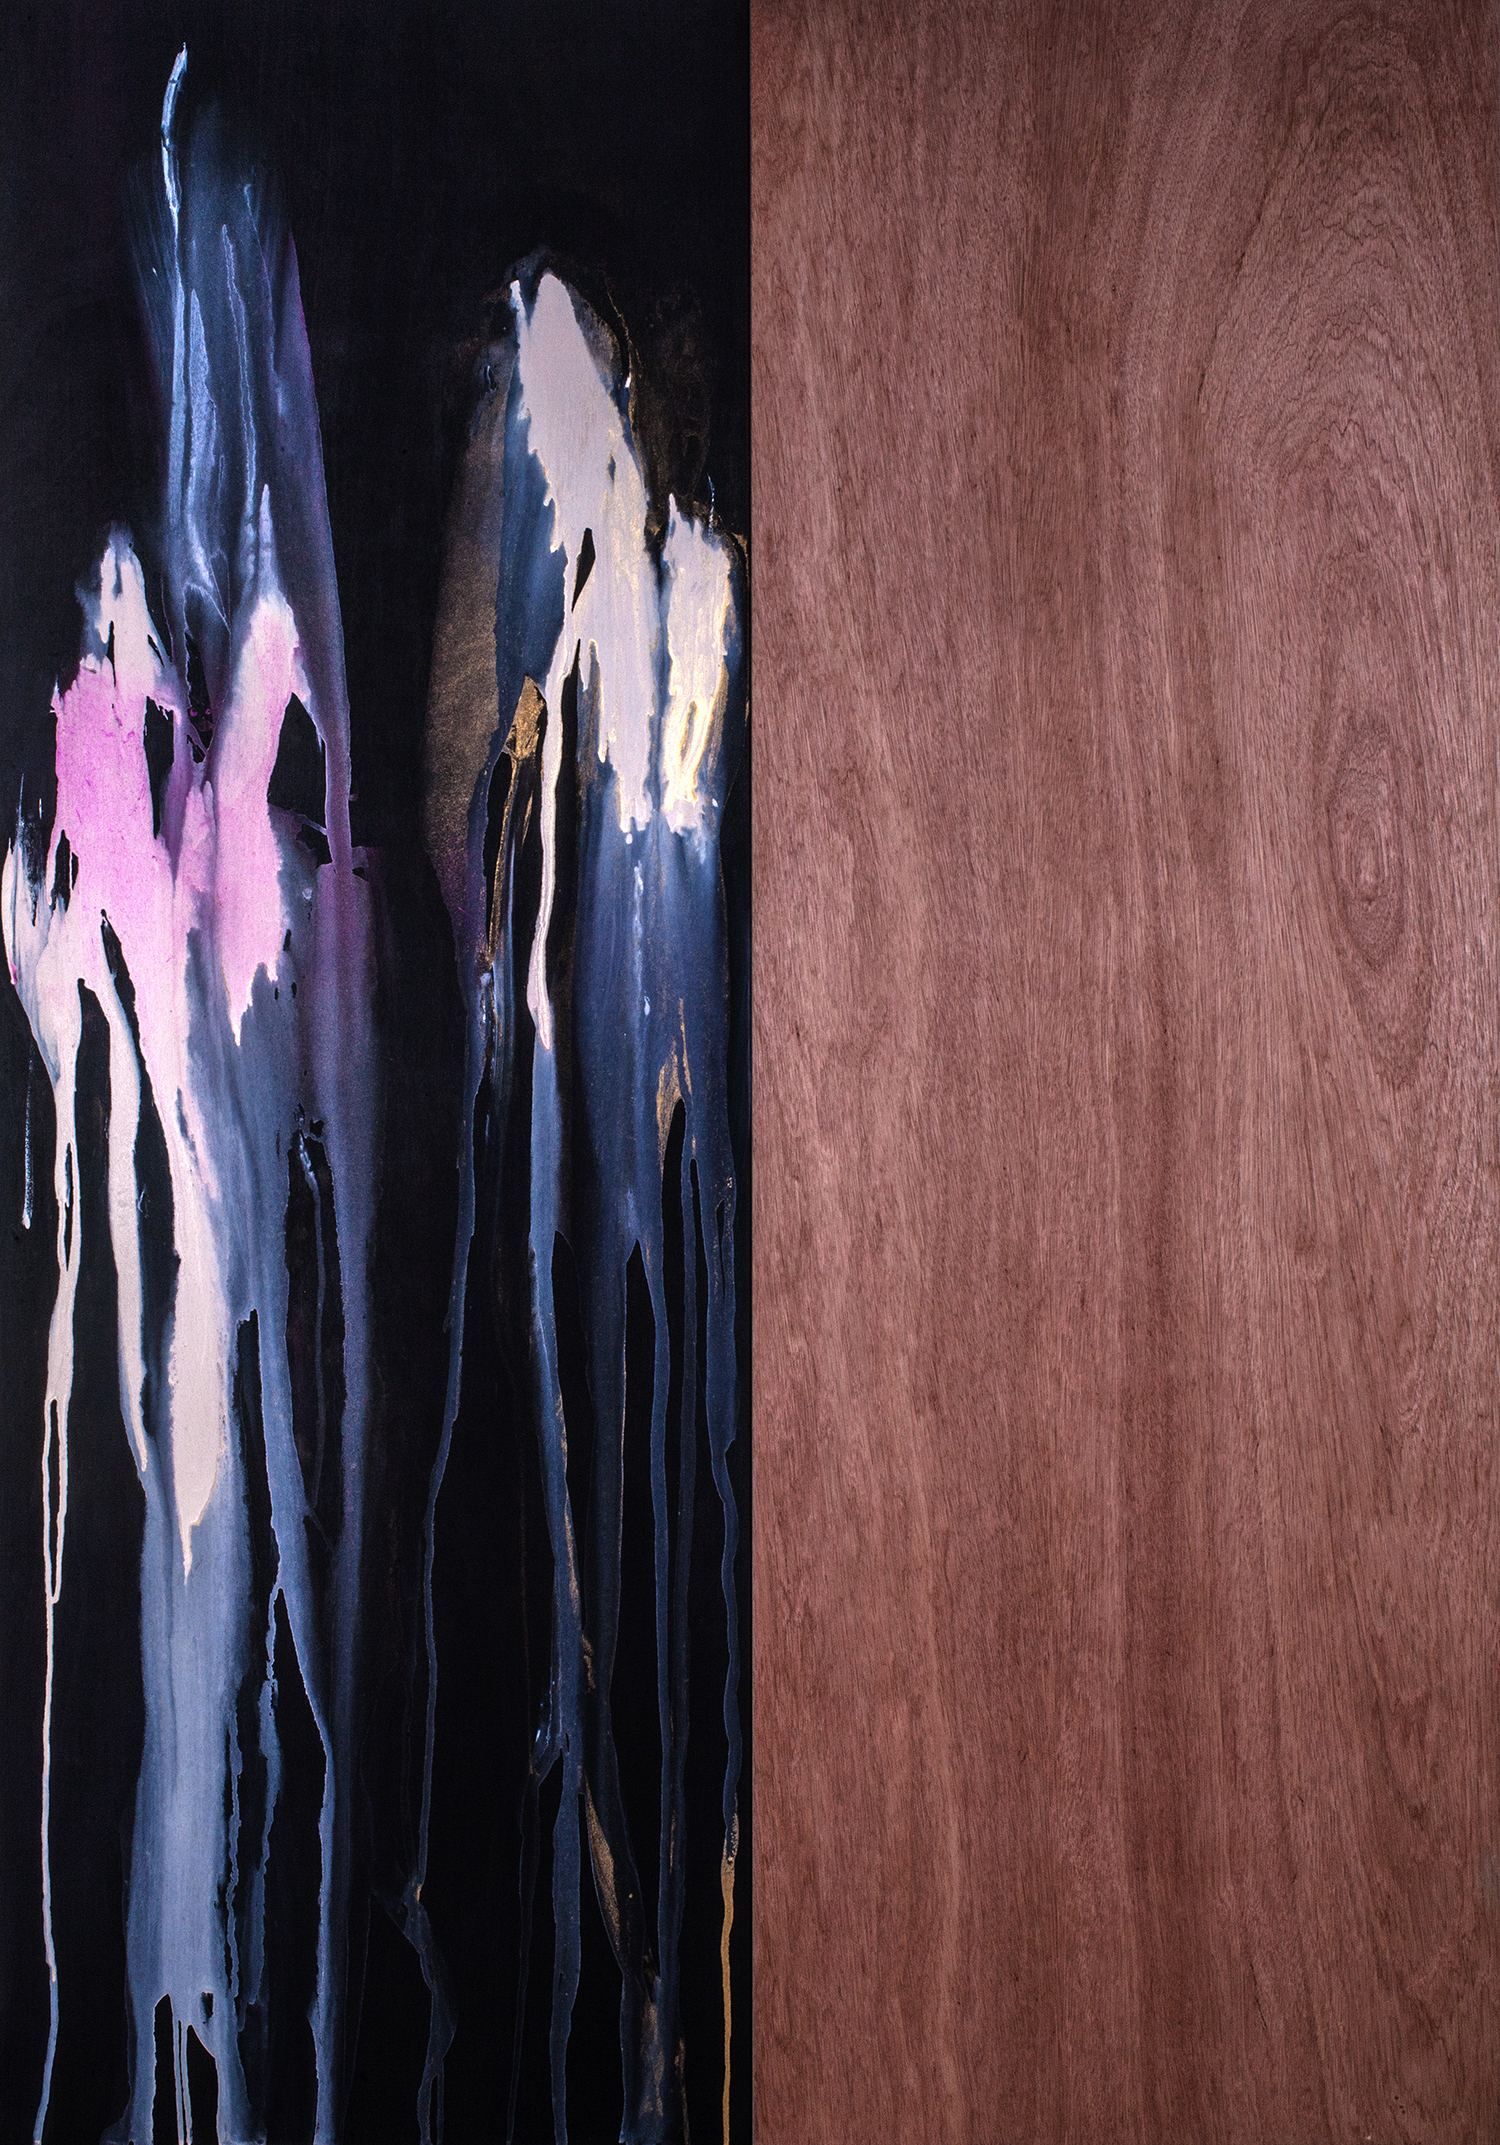 Ghosts and Divinity,  2013 Piano lacquer and acrylic on birch 80 x 56 inches